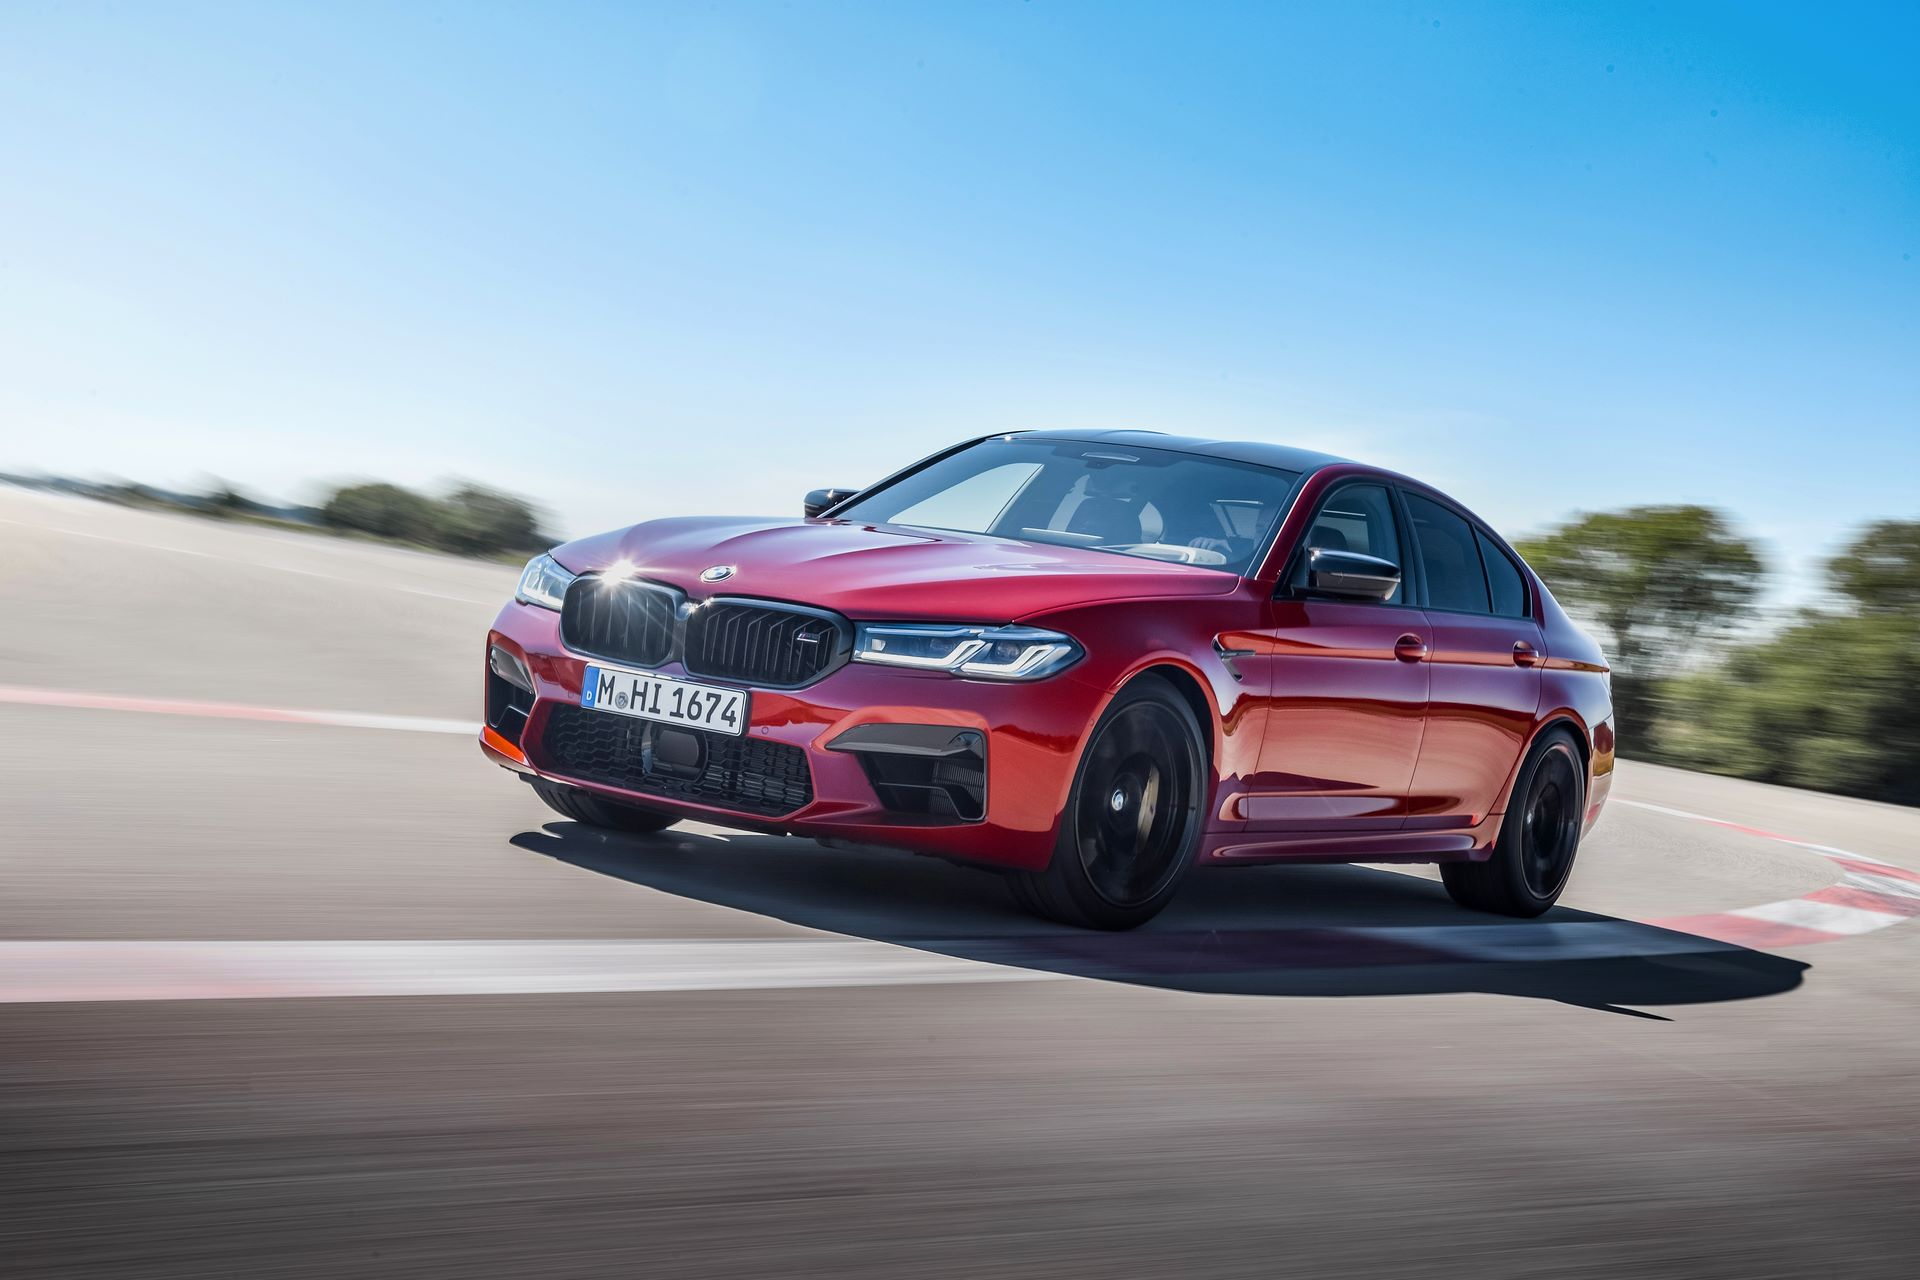 BMW-M5-and-BMW-M5-Competition-facelift-2020-4